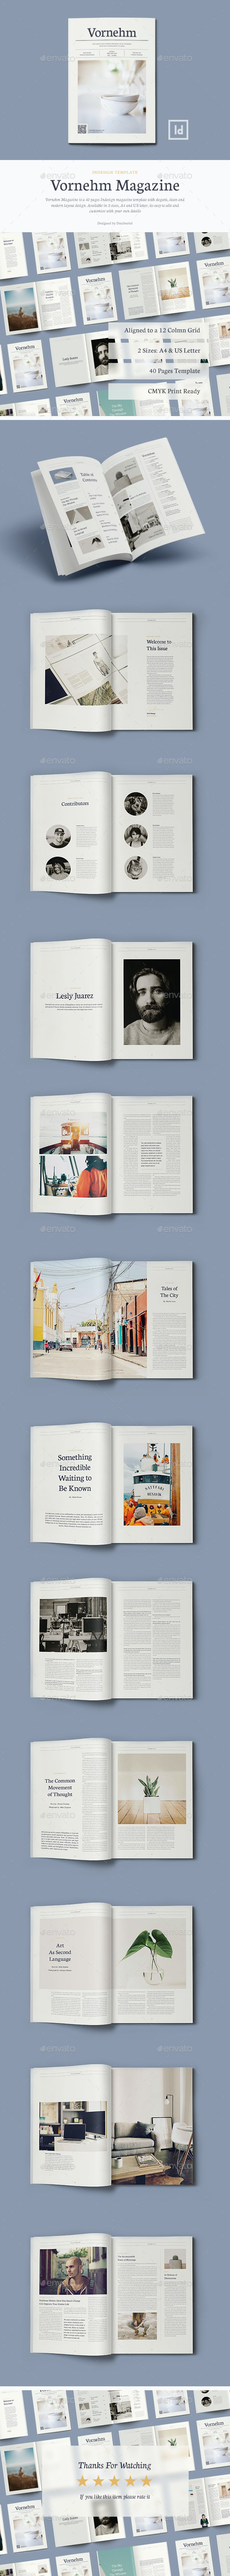 Vornehm Magazine - 40 Pages Indesign Template by Danibernd